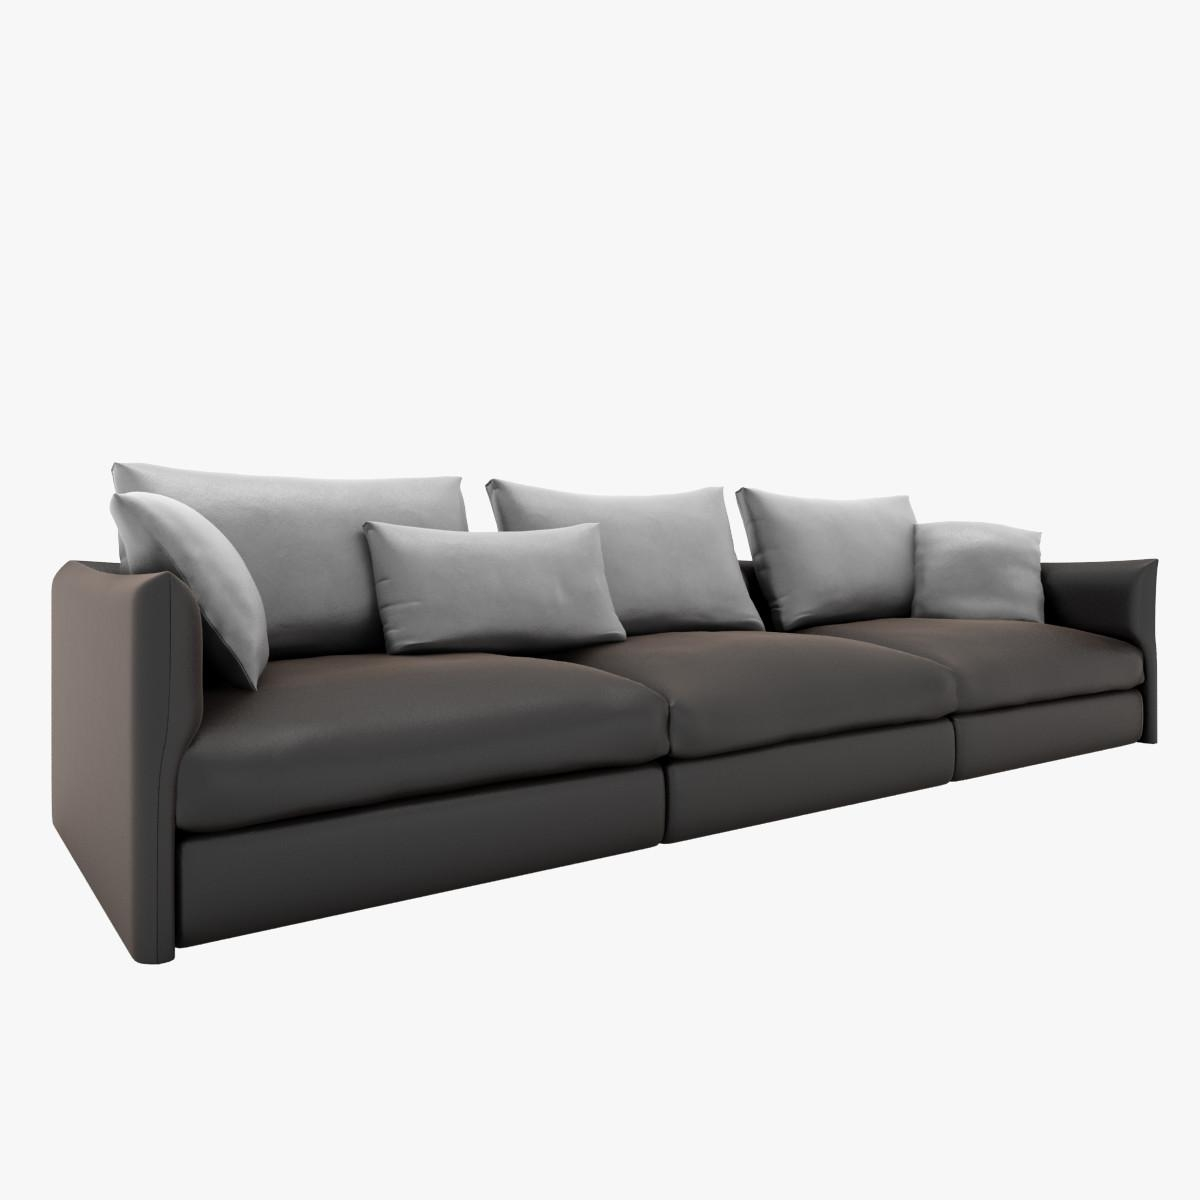 Camerich Sofa Freetown Sofa Camerich Au Furniture – Gallery Image In Camerich Sofas (Image 10 of 19)